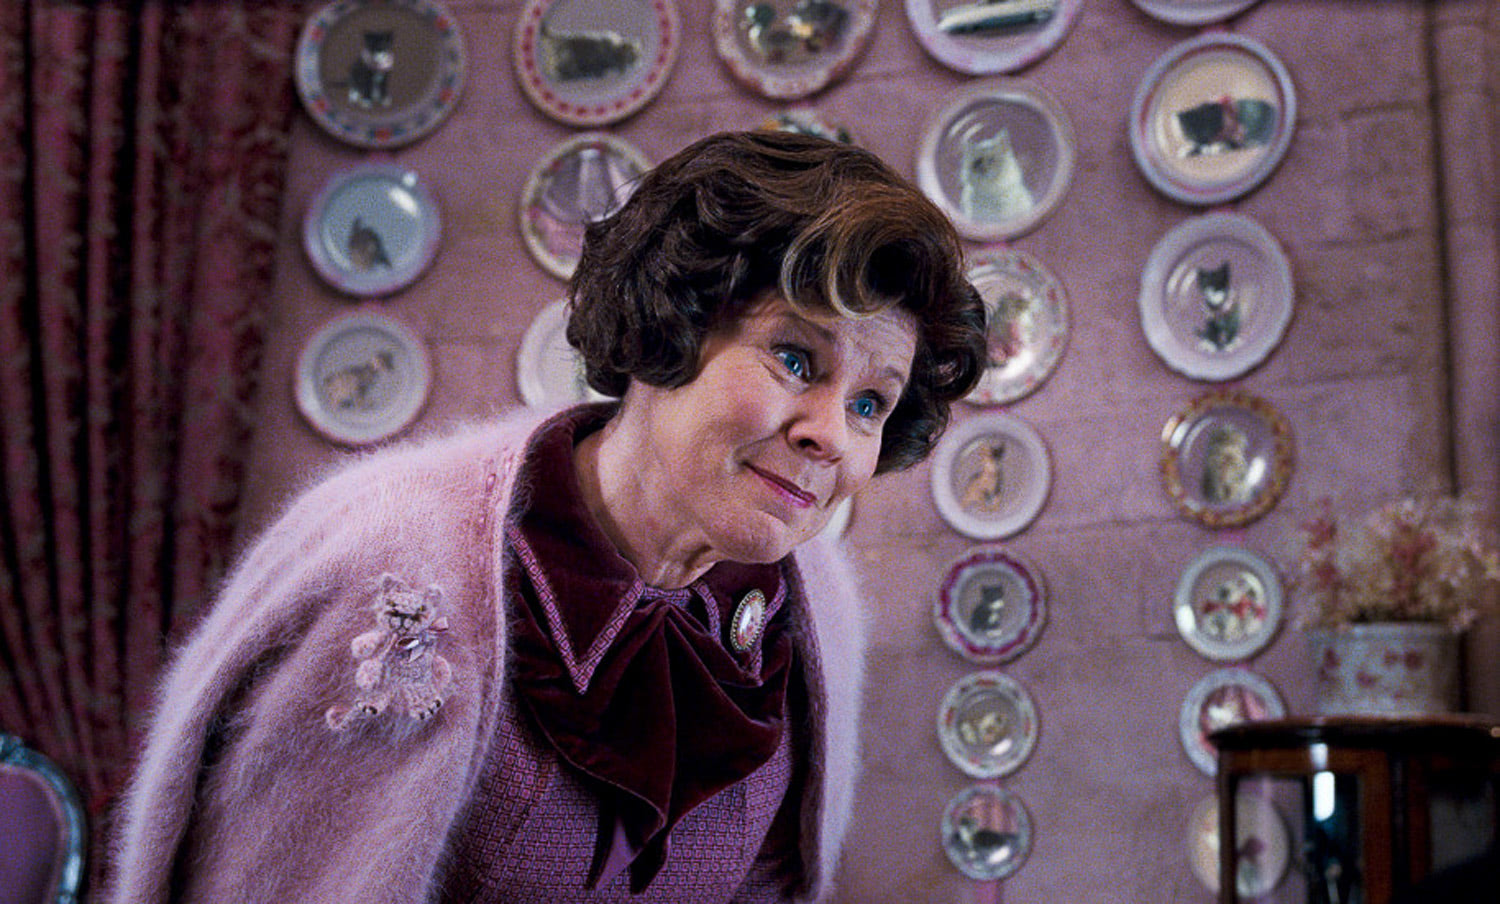 Umbridge in her office